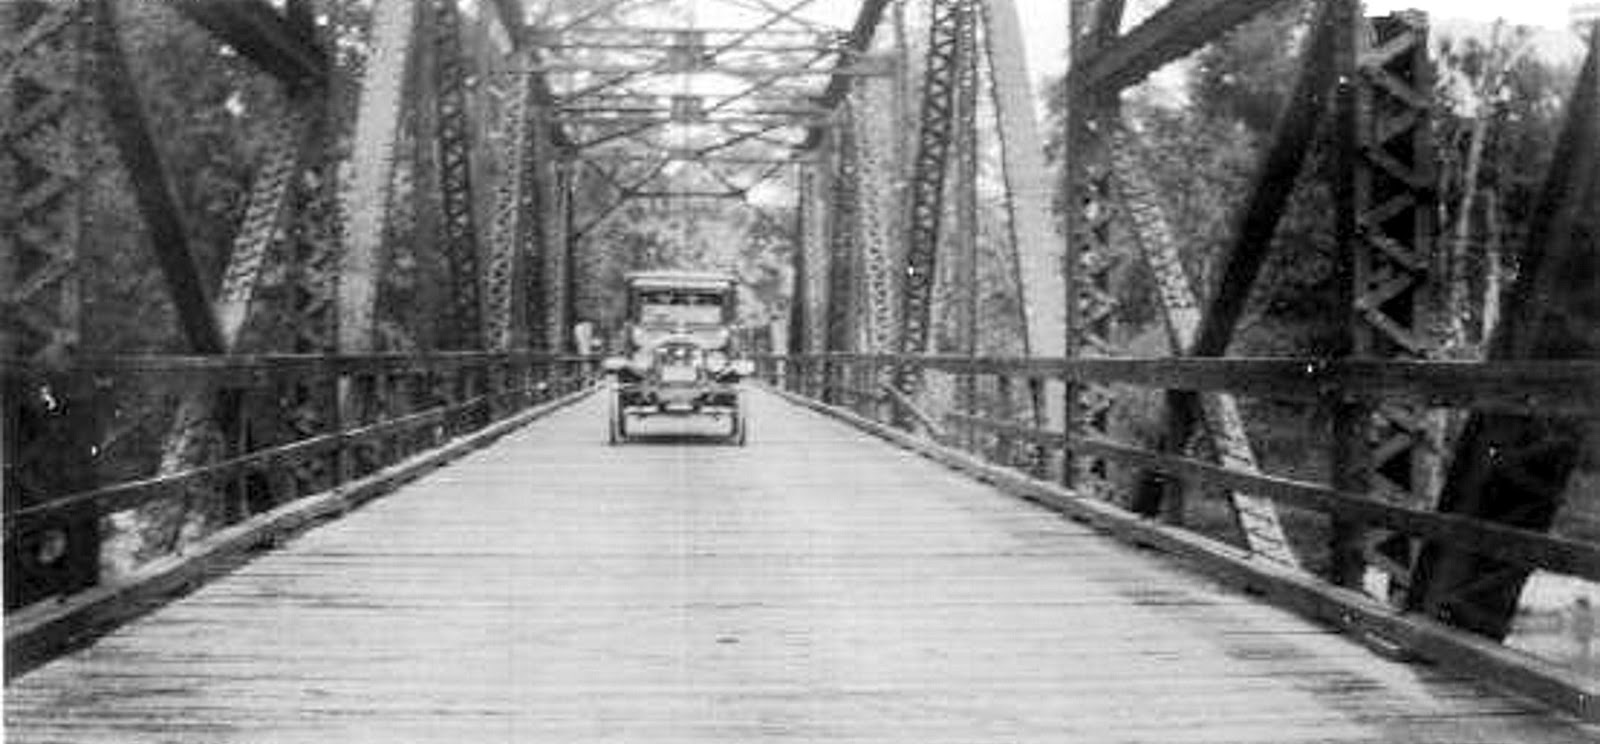 bridge over the pearl river leading into mississippi year 1926 image from the bay st louis facebook page